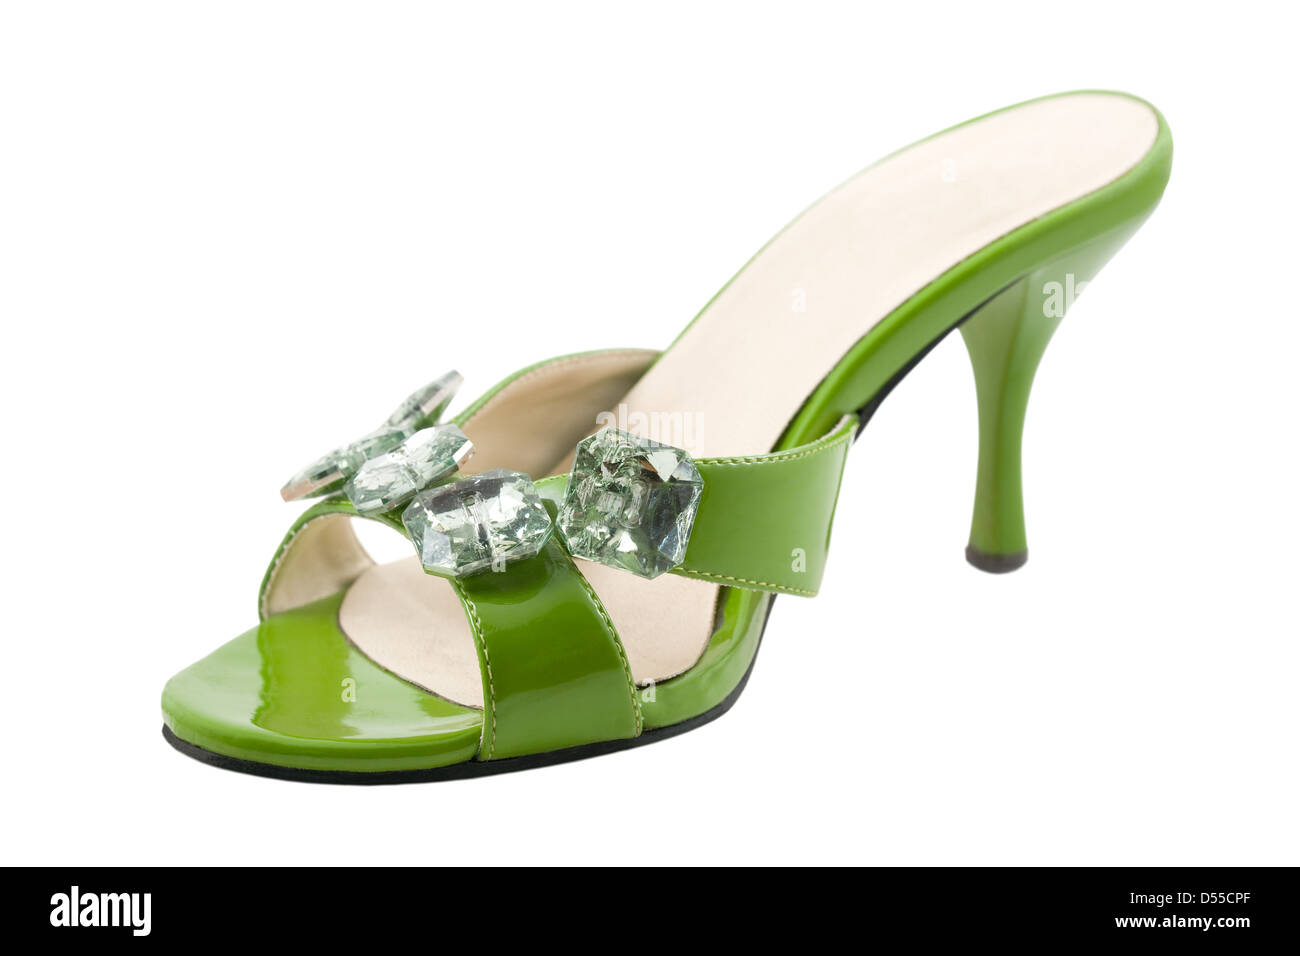 The green shoe are photographed on the white background - Stock Image